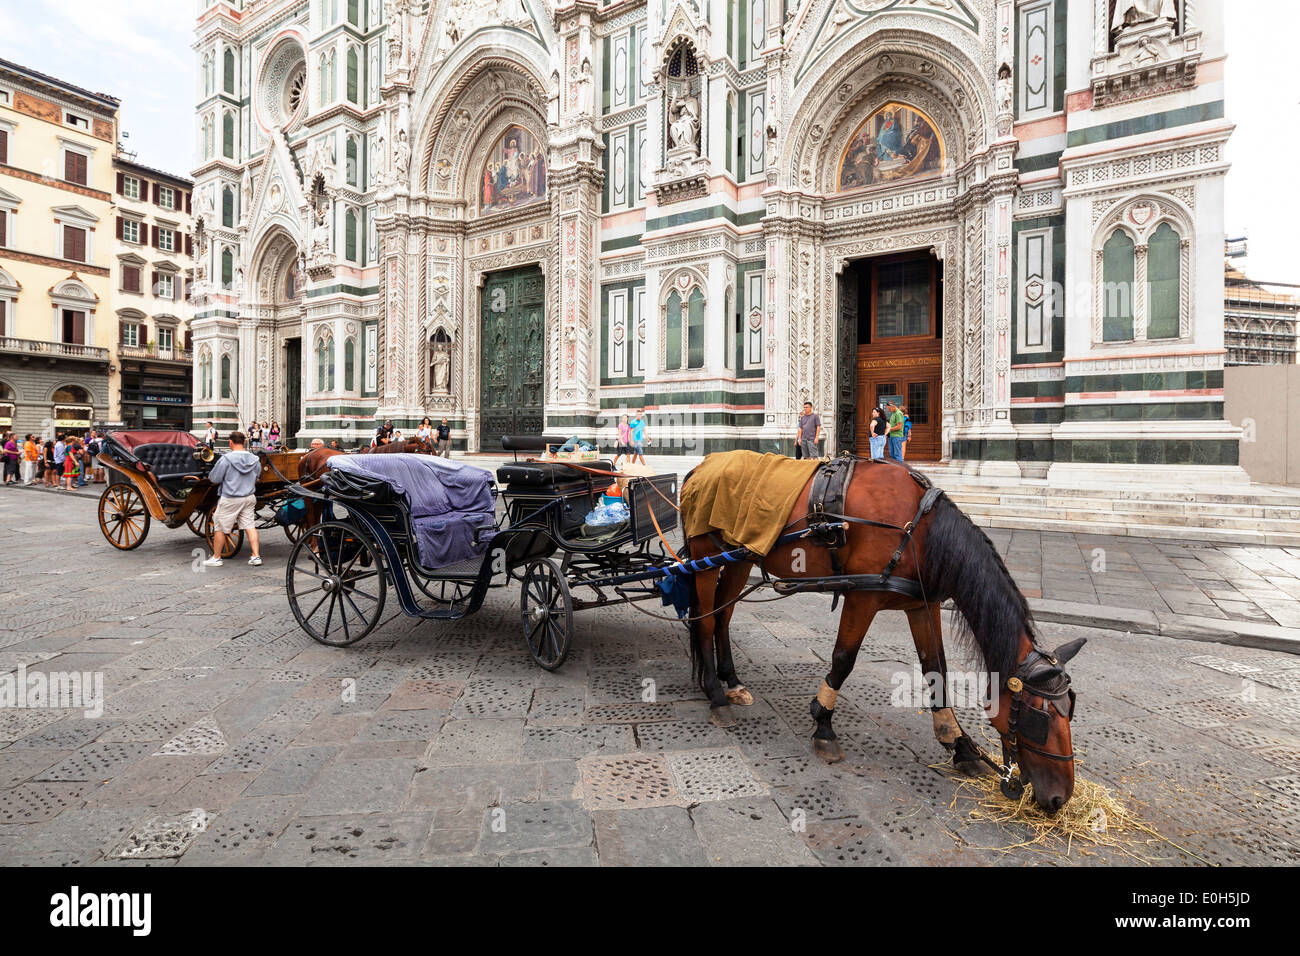 Horse-drawn carriage in front of the Cathedral Santa Maria del Fiore, Florence, Tuscany, Italy, Europe - Stock Image